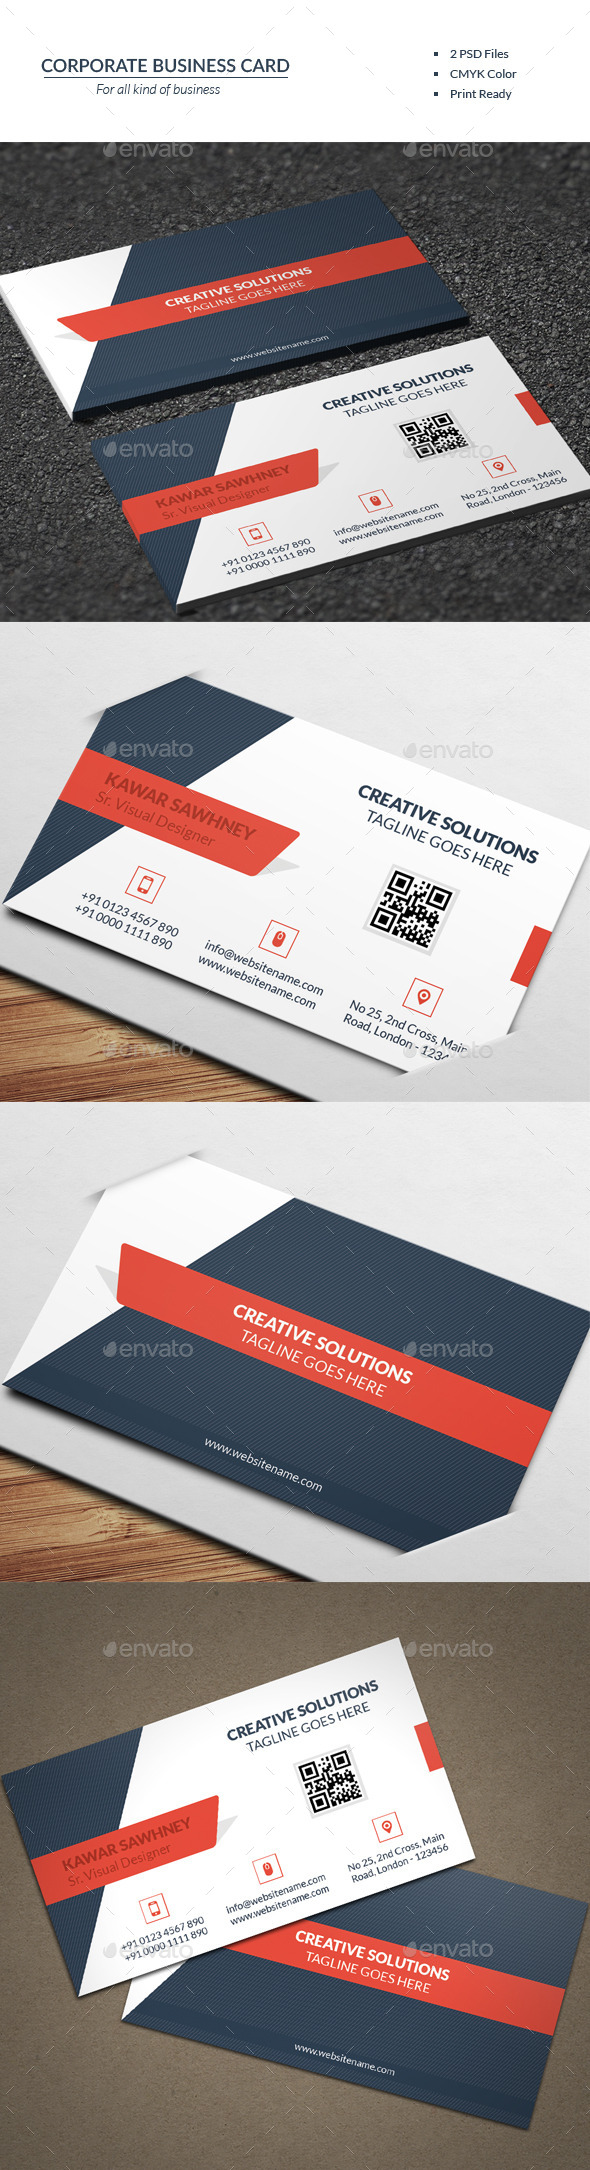 Corporate Business Card 12 - Business Cards Print Templates